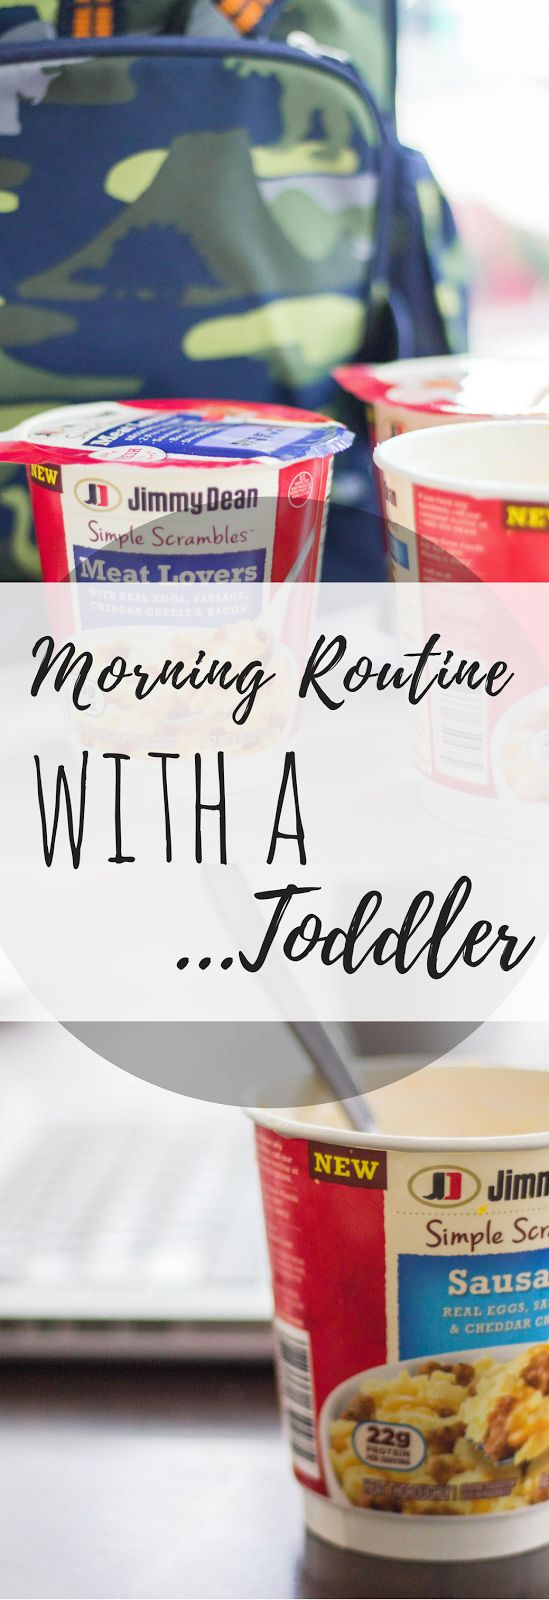 #ad Morning Routine   The View From Up Here The Best Morning Routine for a stay at home mom of toddlers. It's hard to find what works for you when you have packing lunches, breakfast, and backpacks to pack--but I'm here to share what works for me and hopefully it helps you too! Stay-At-Home Mom, Parenting, Motherhood Parenthood Family Stay-at-home Mom Routine Mental Health morning routine   morning ritual   morning habits   creating new habits